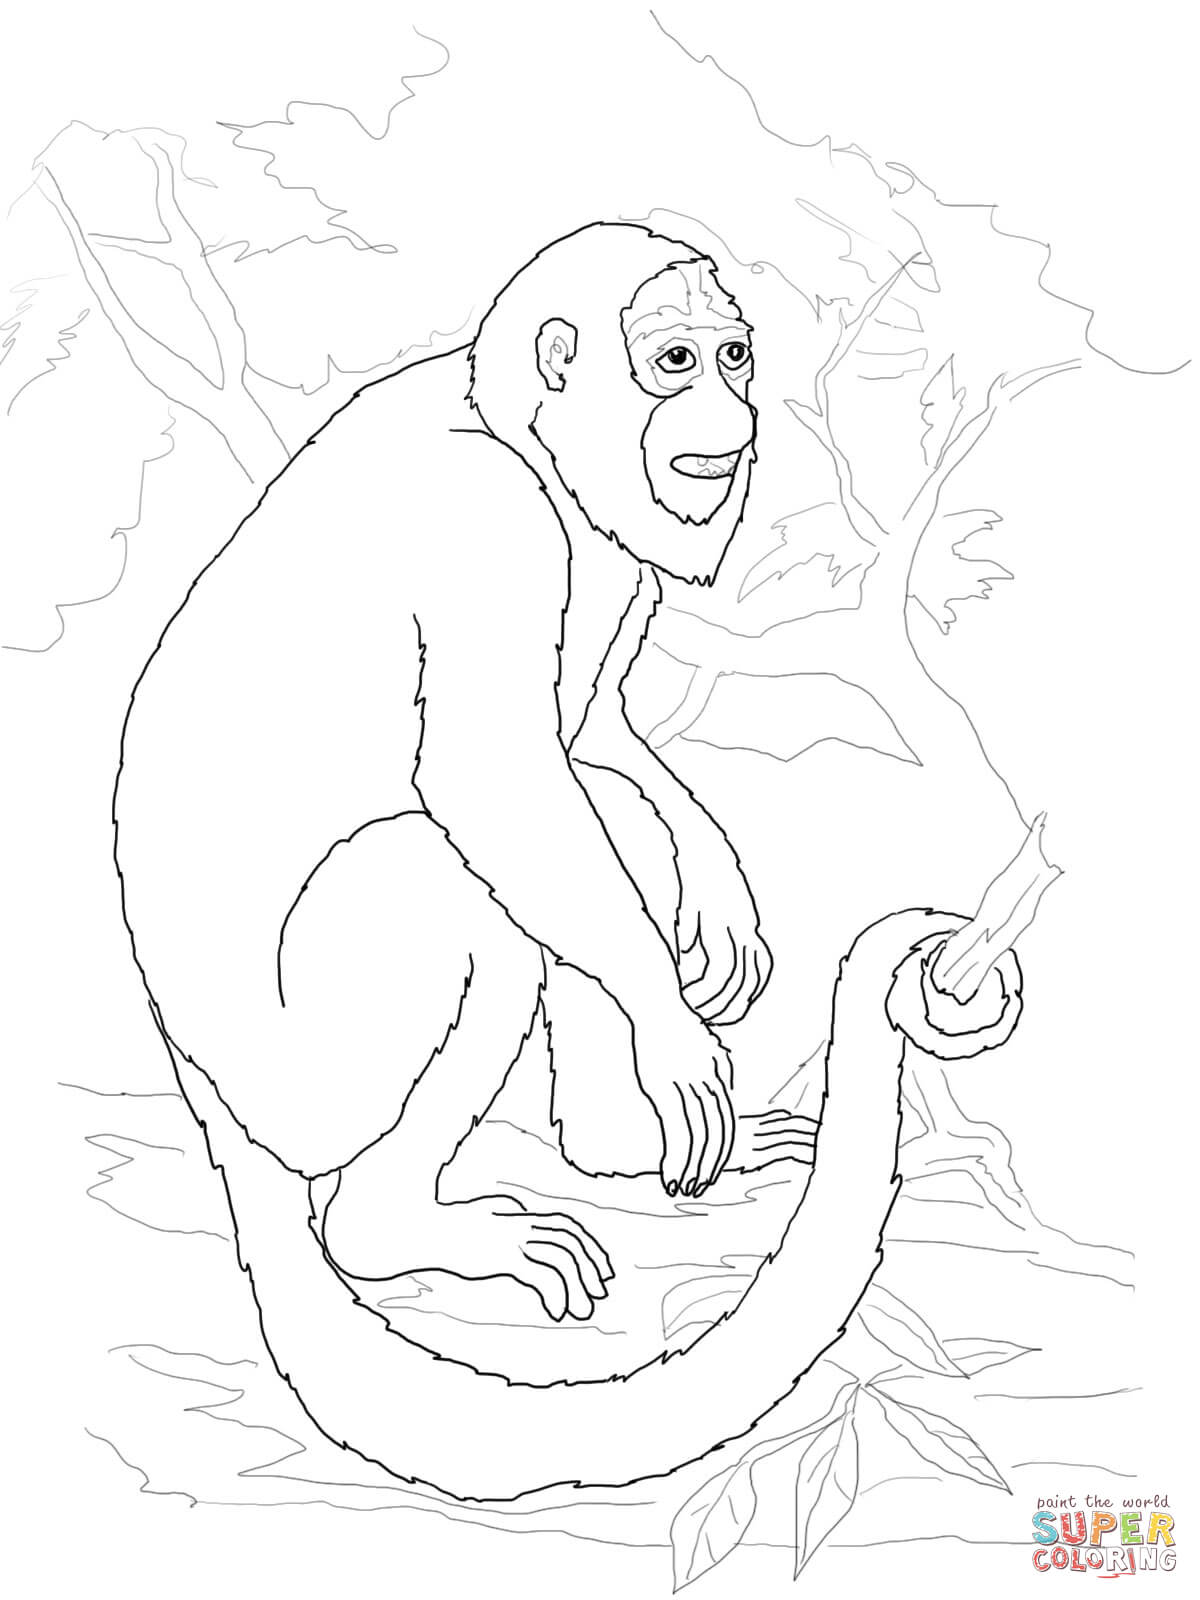 Howler Monkey coloring #13, Download drawings